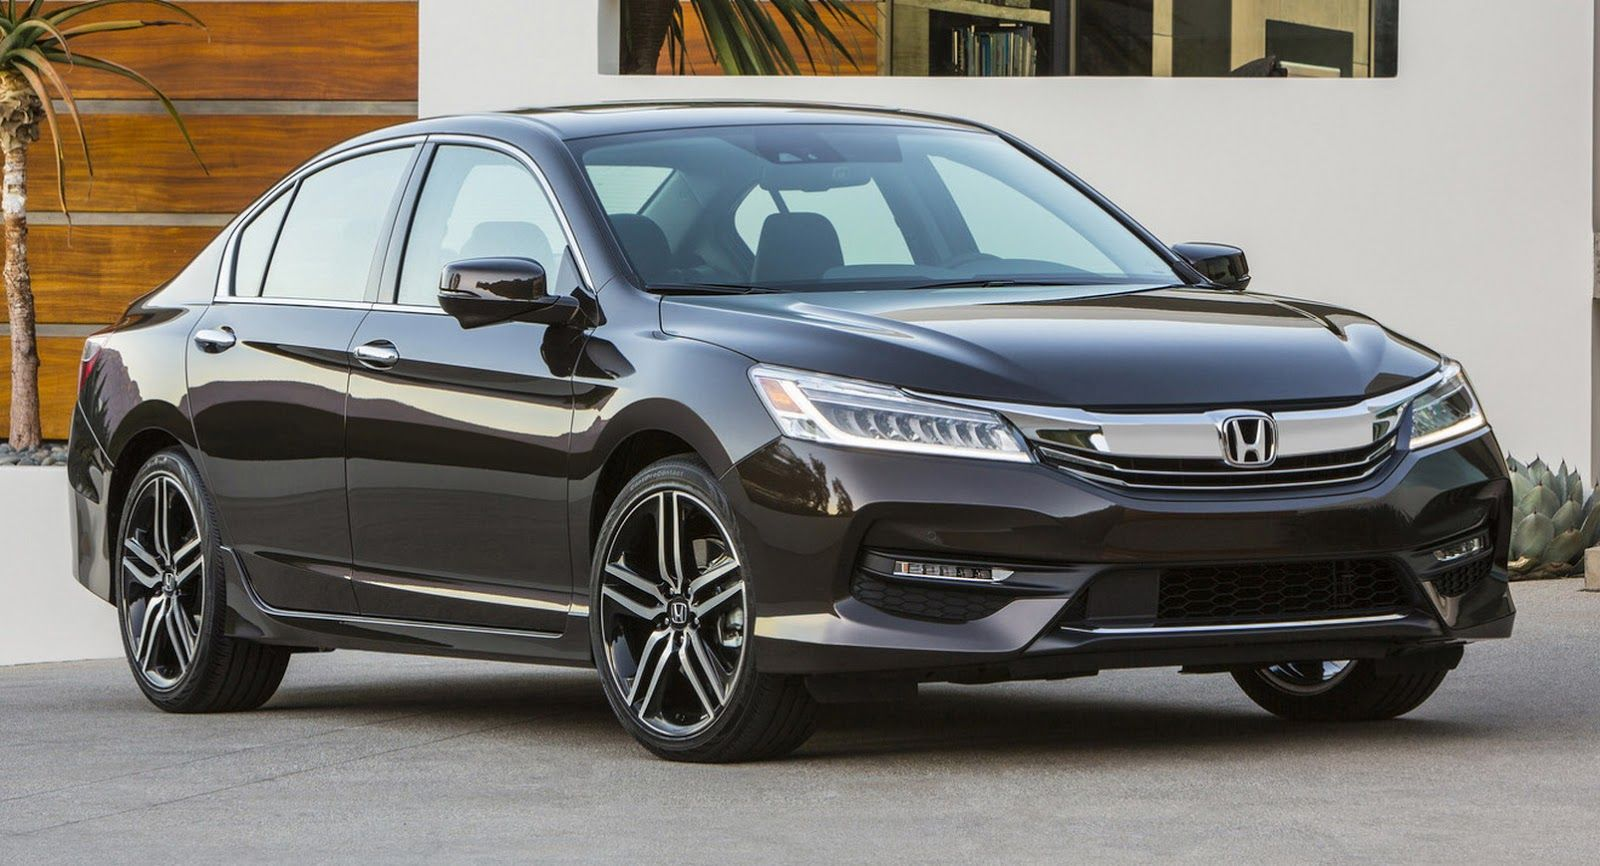 2016 Honda Accord Release Date, News, and Specs http